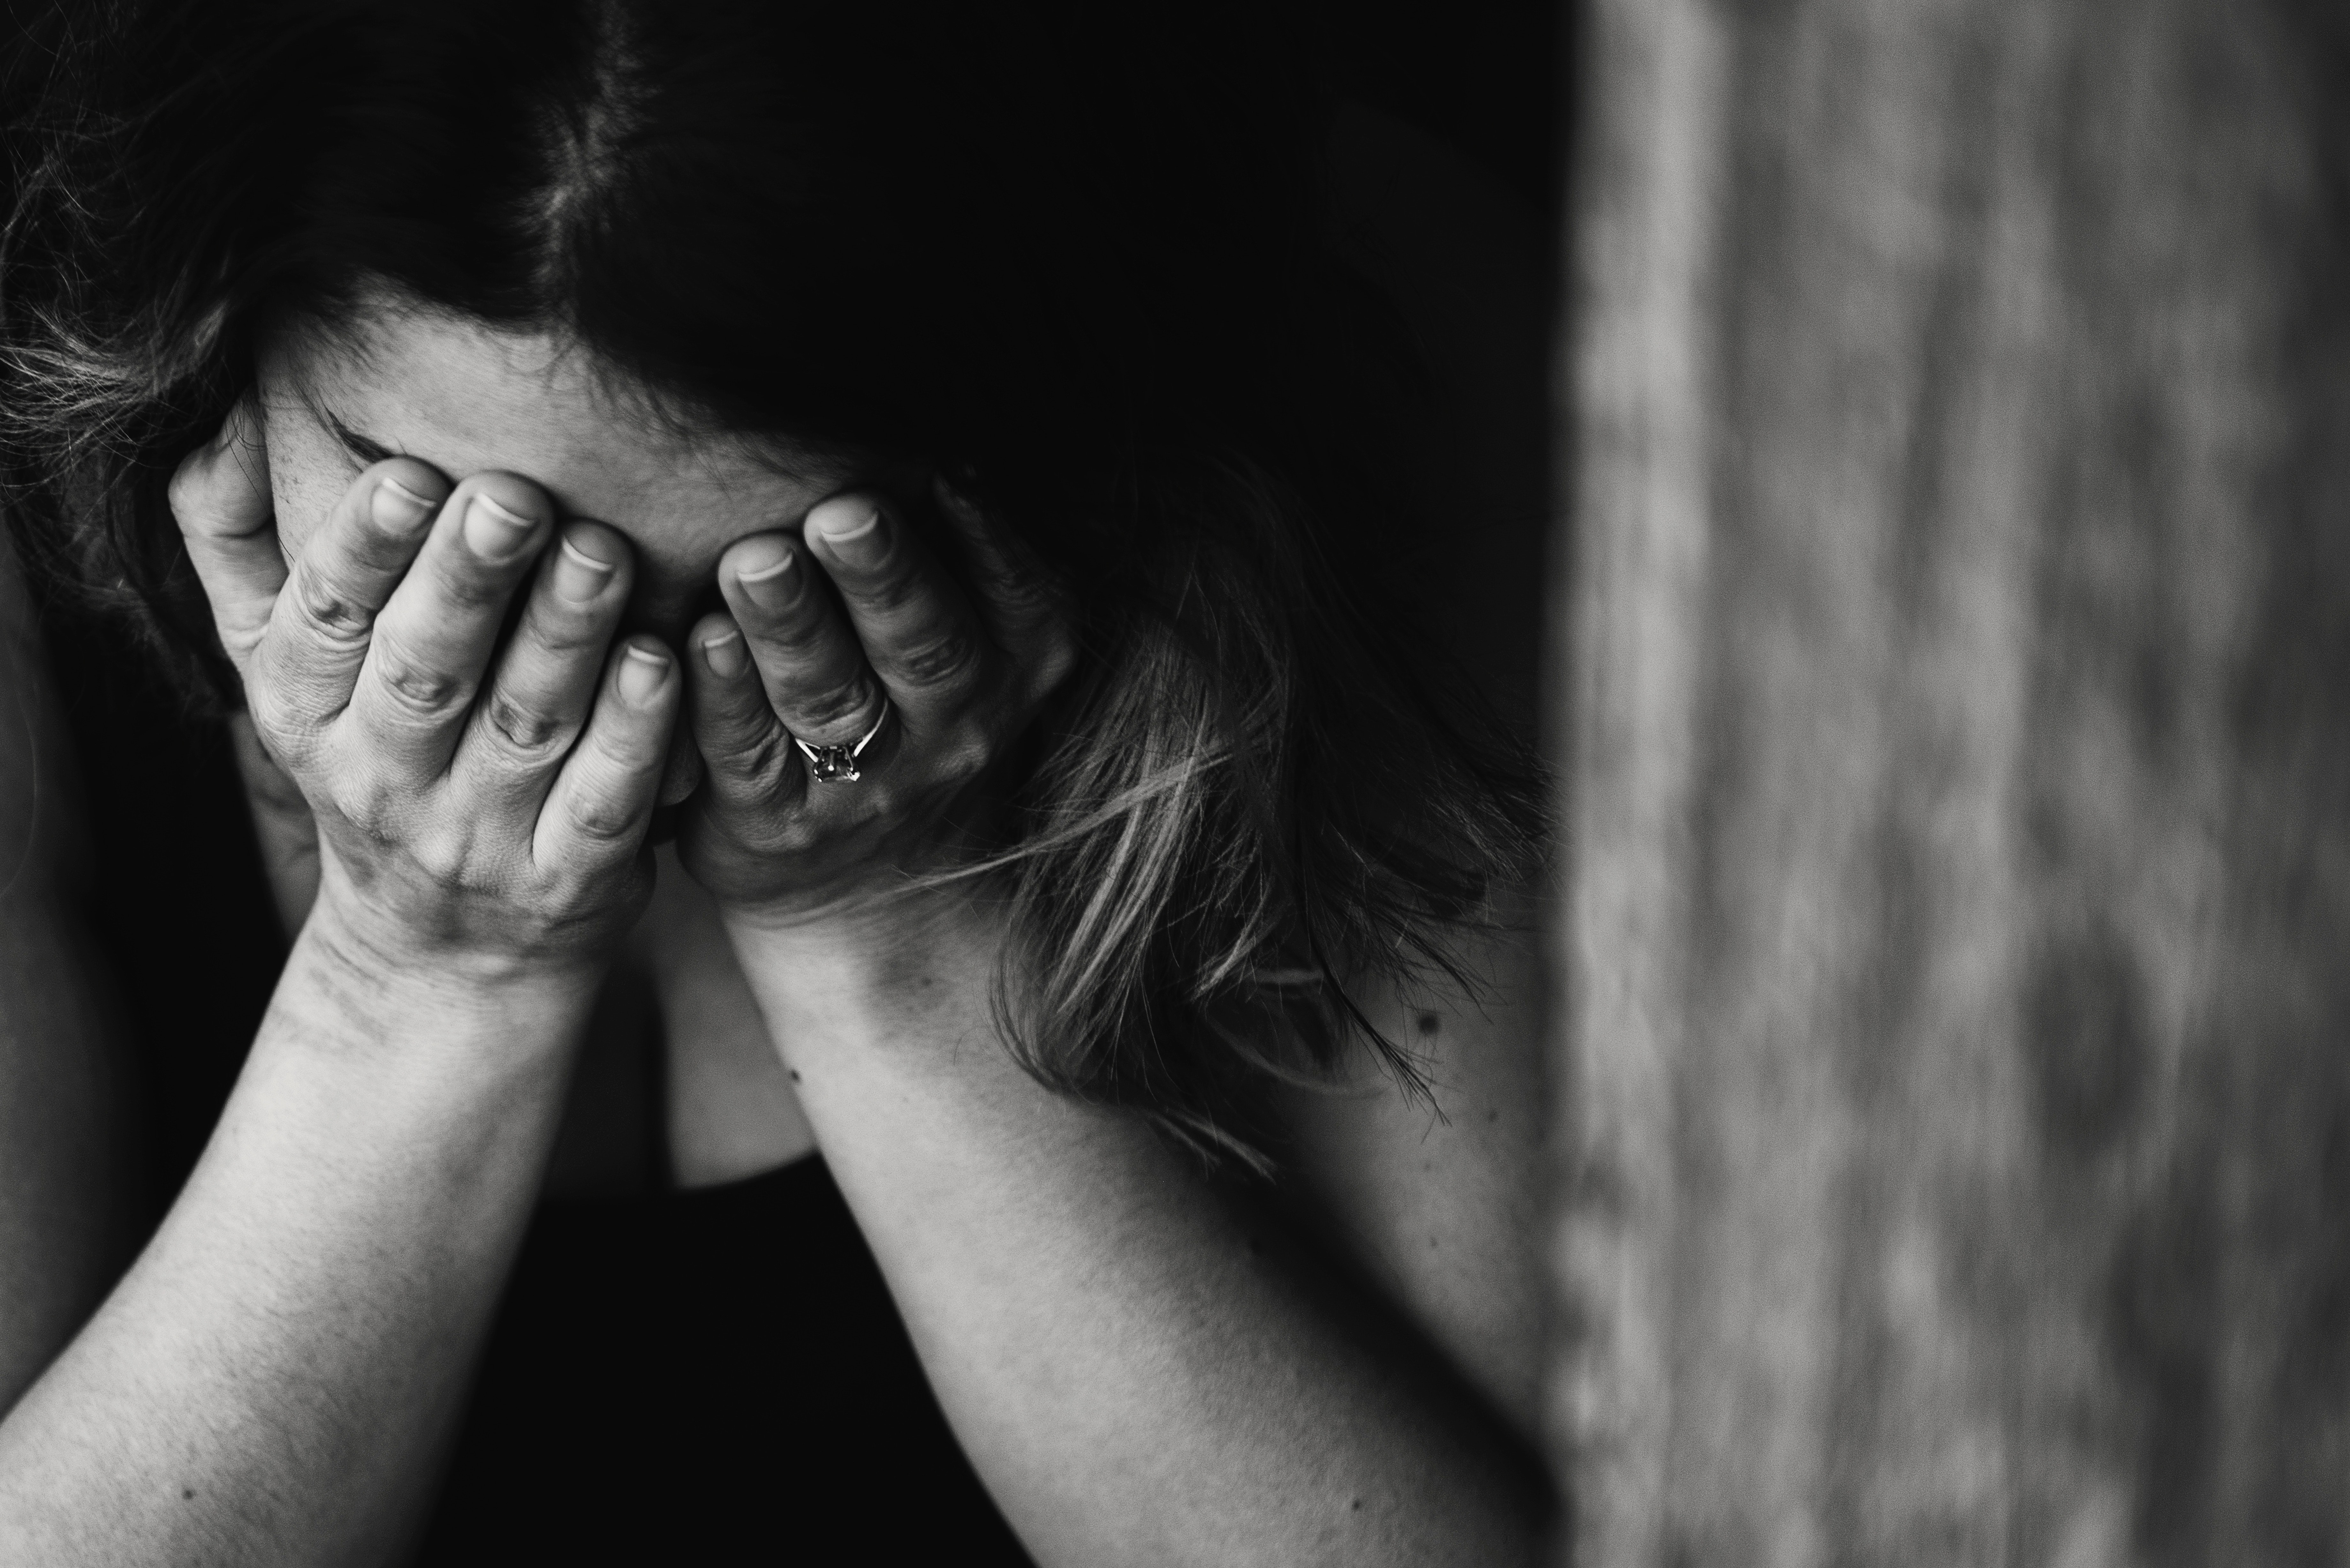 Rape, Assault, Abuse and the Fall